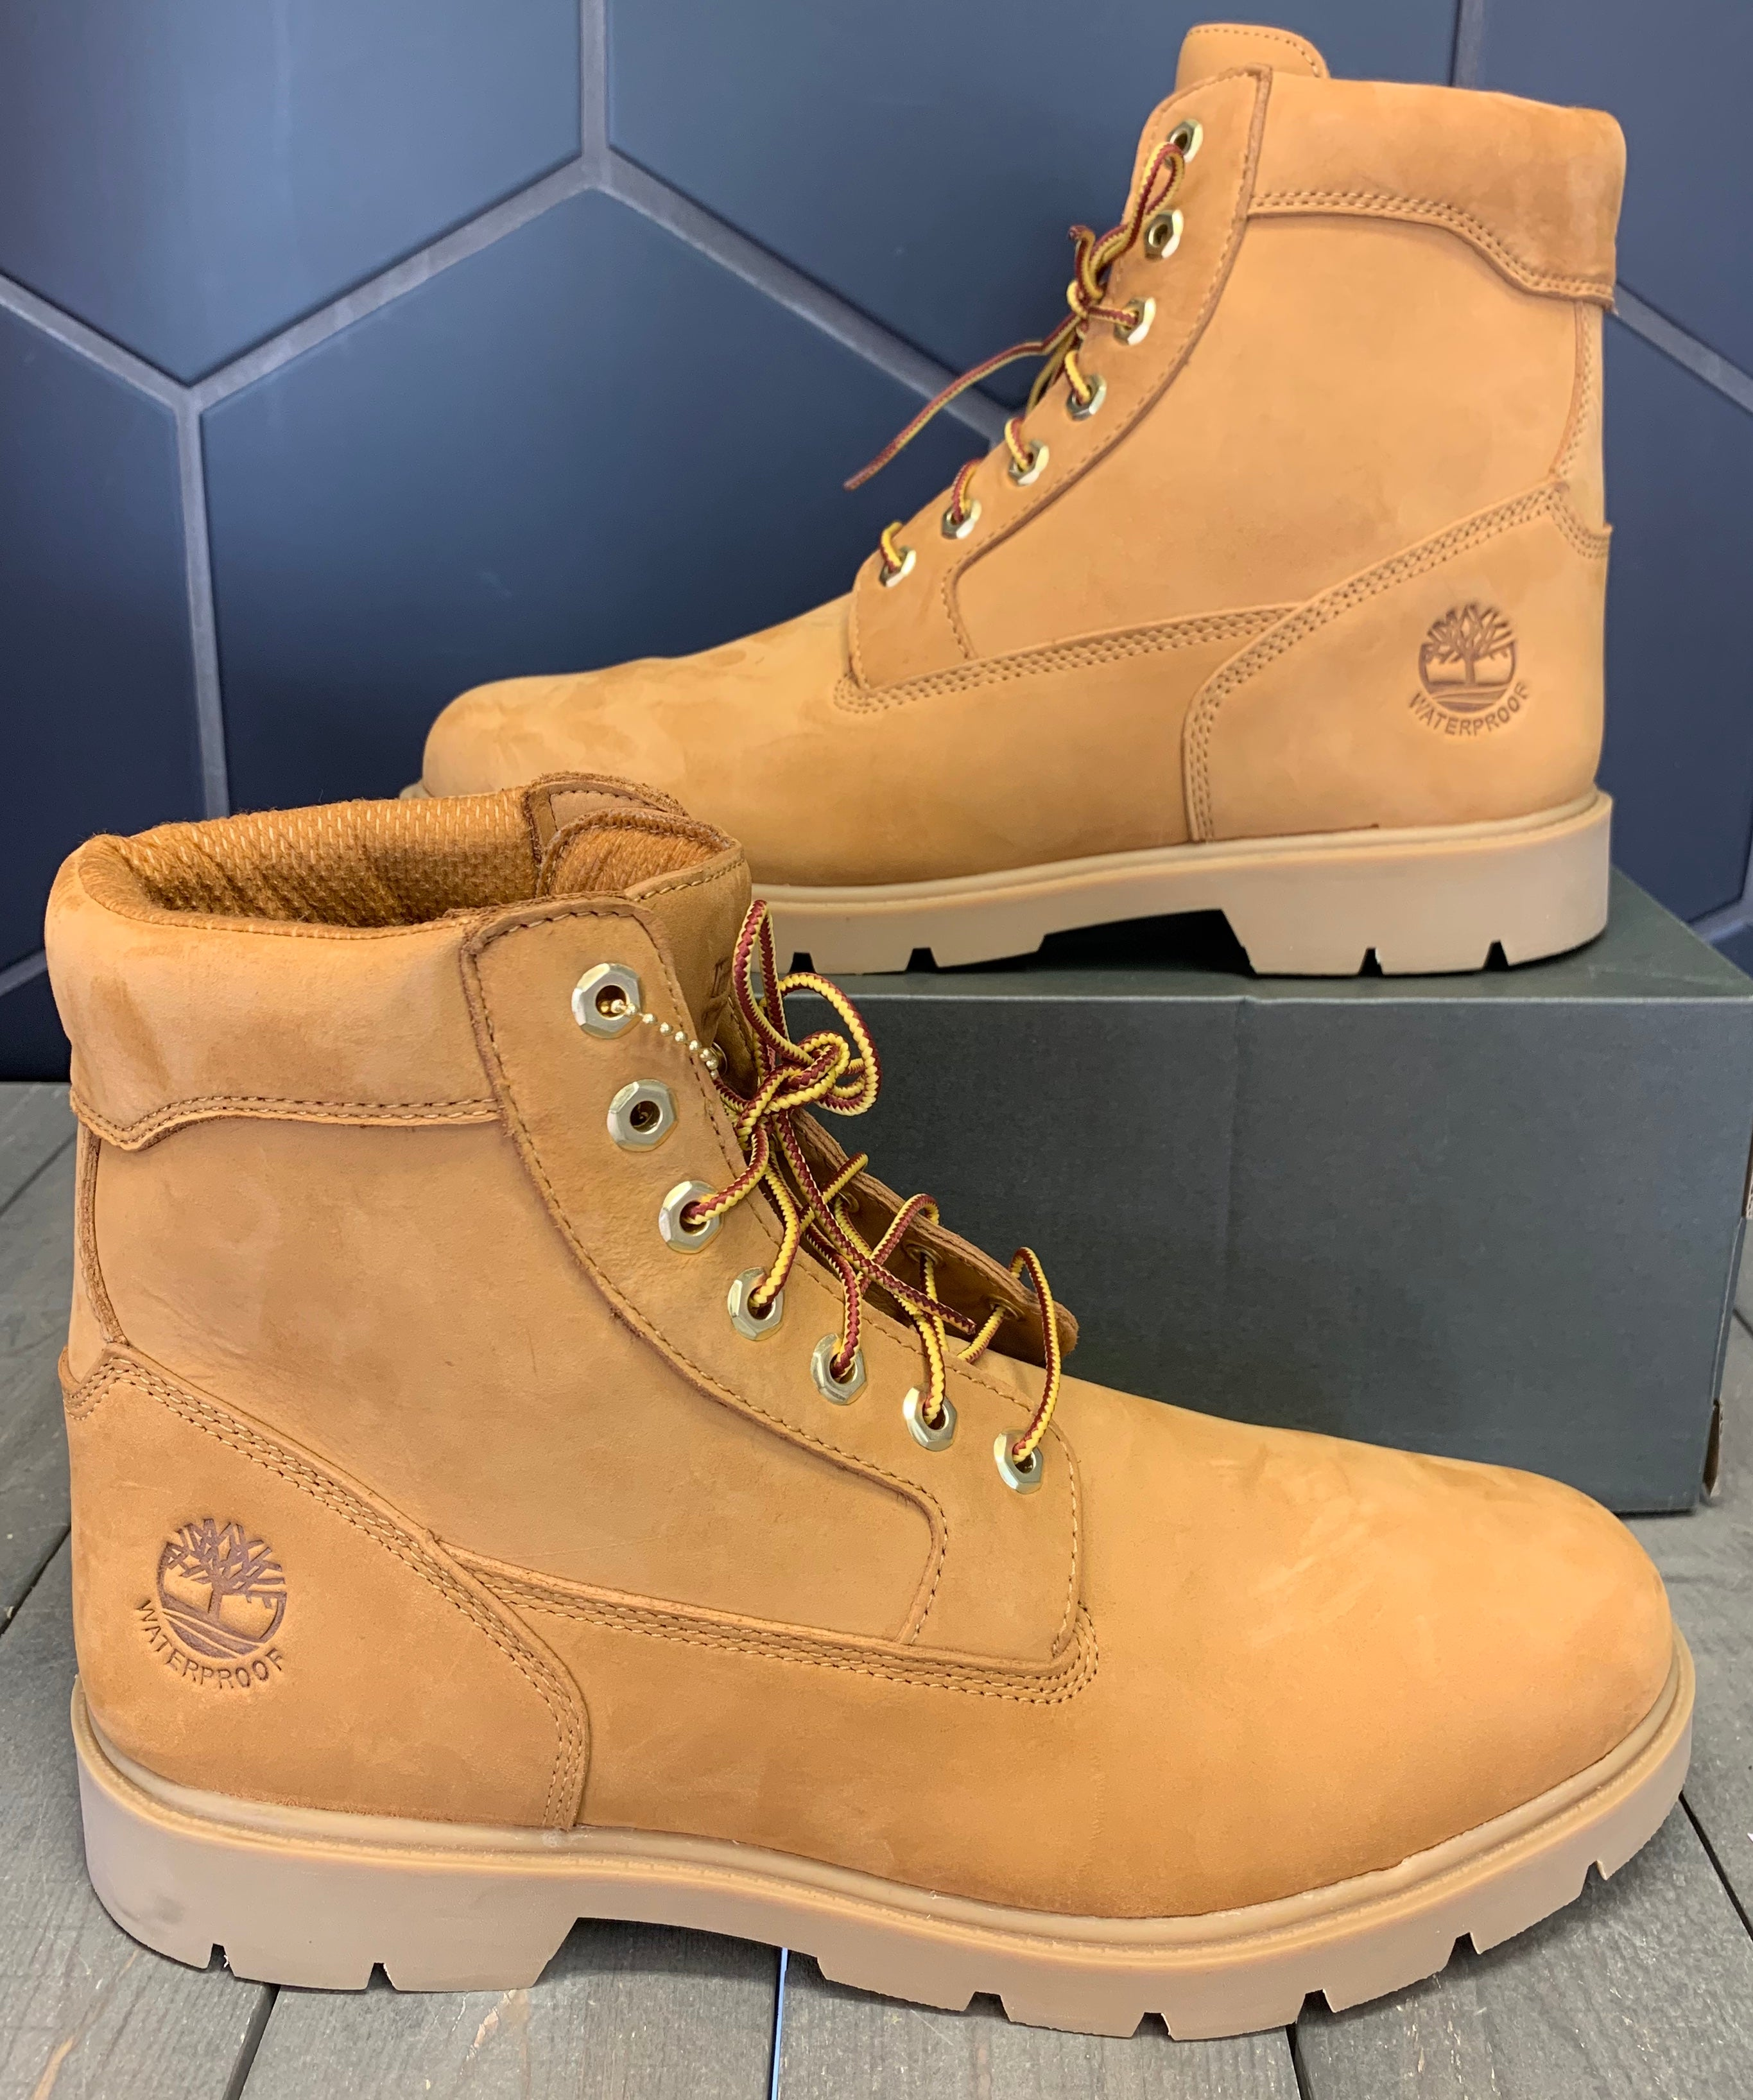 New W Box! Mens Timberland Classic 6 Inch Waterproof Boot